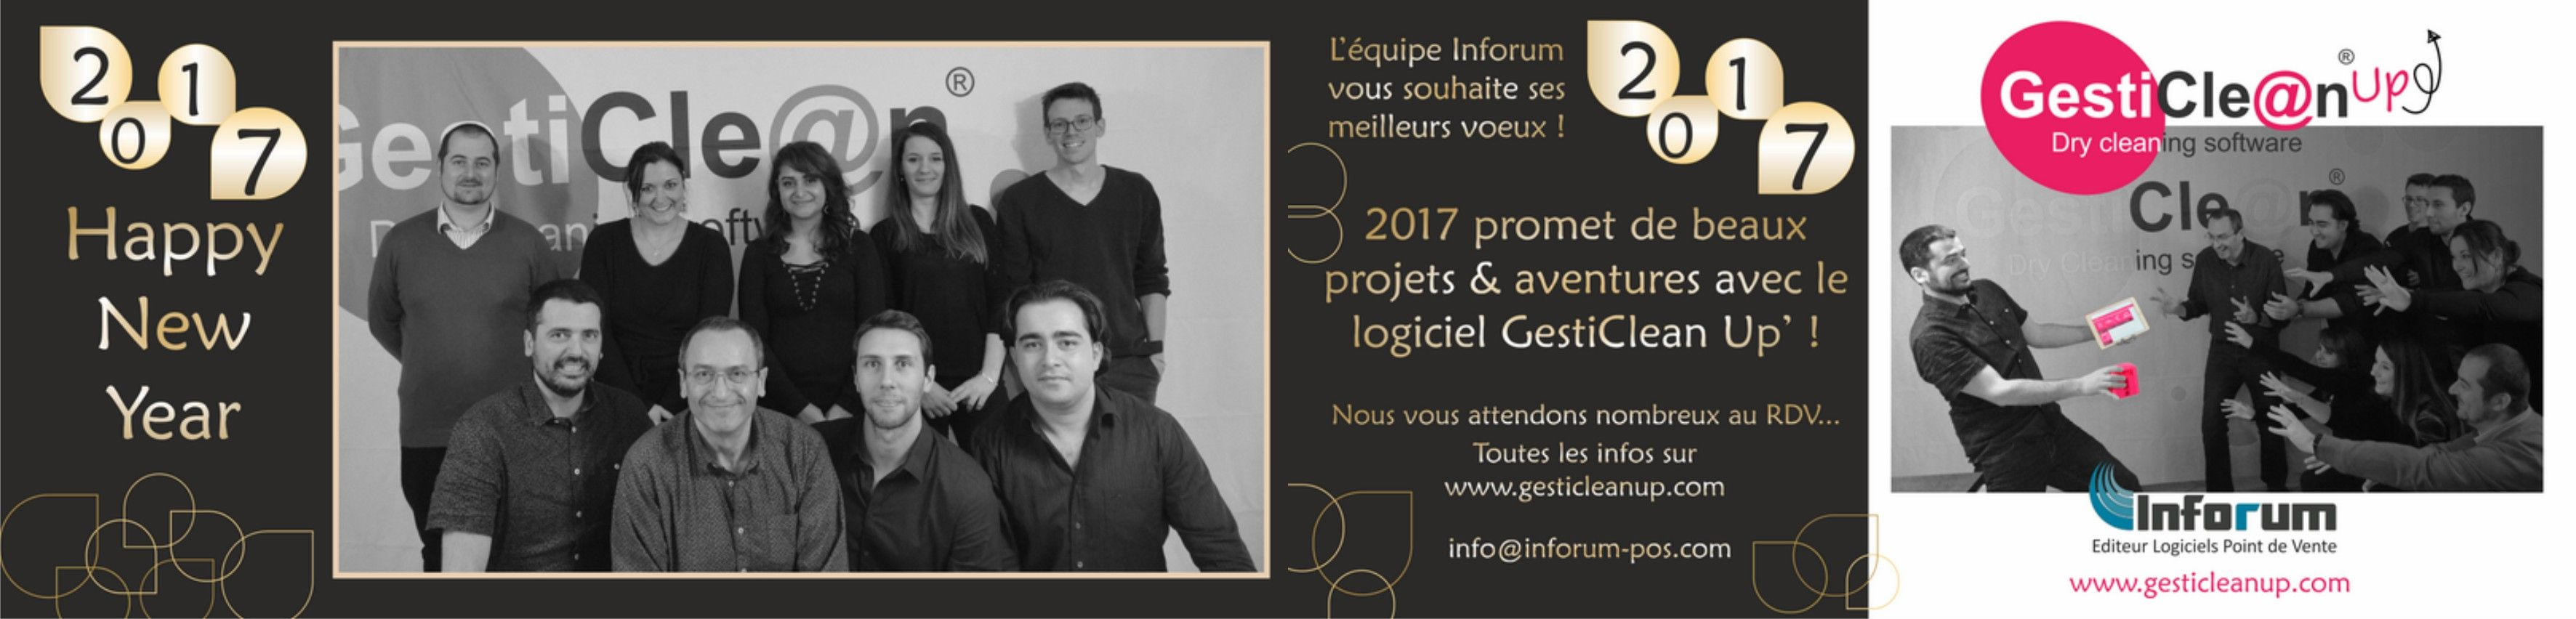 Carte de vœux Inforum 2017